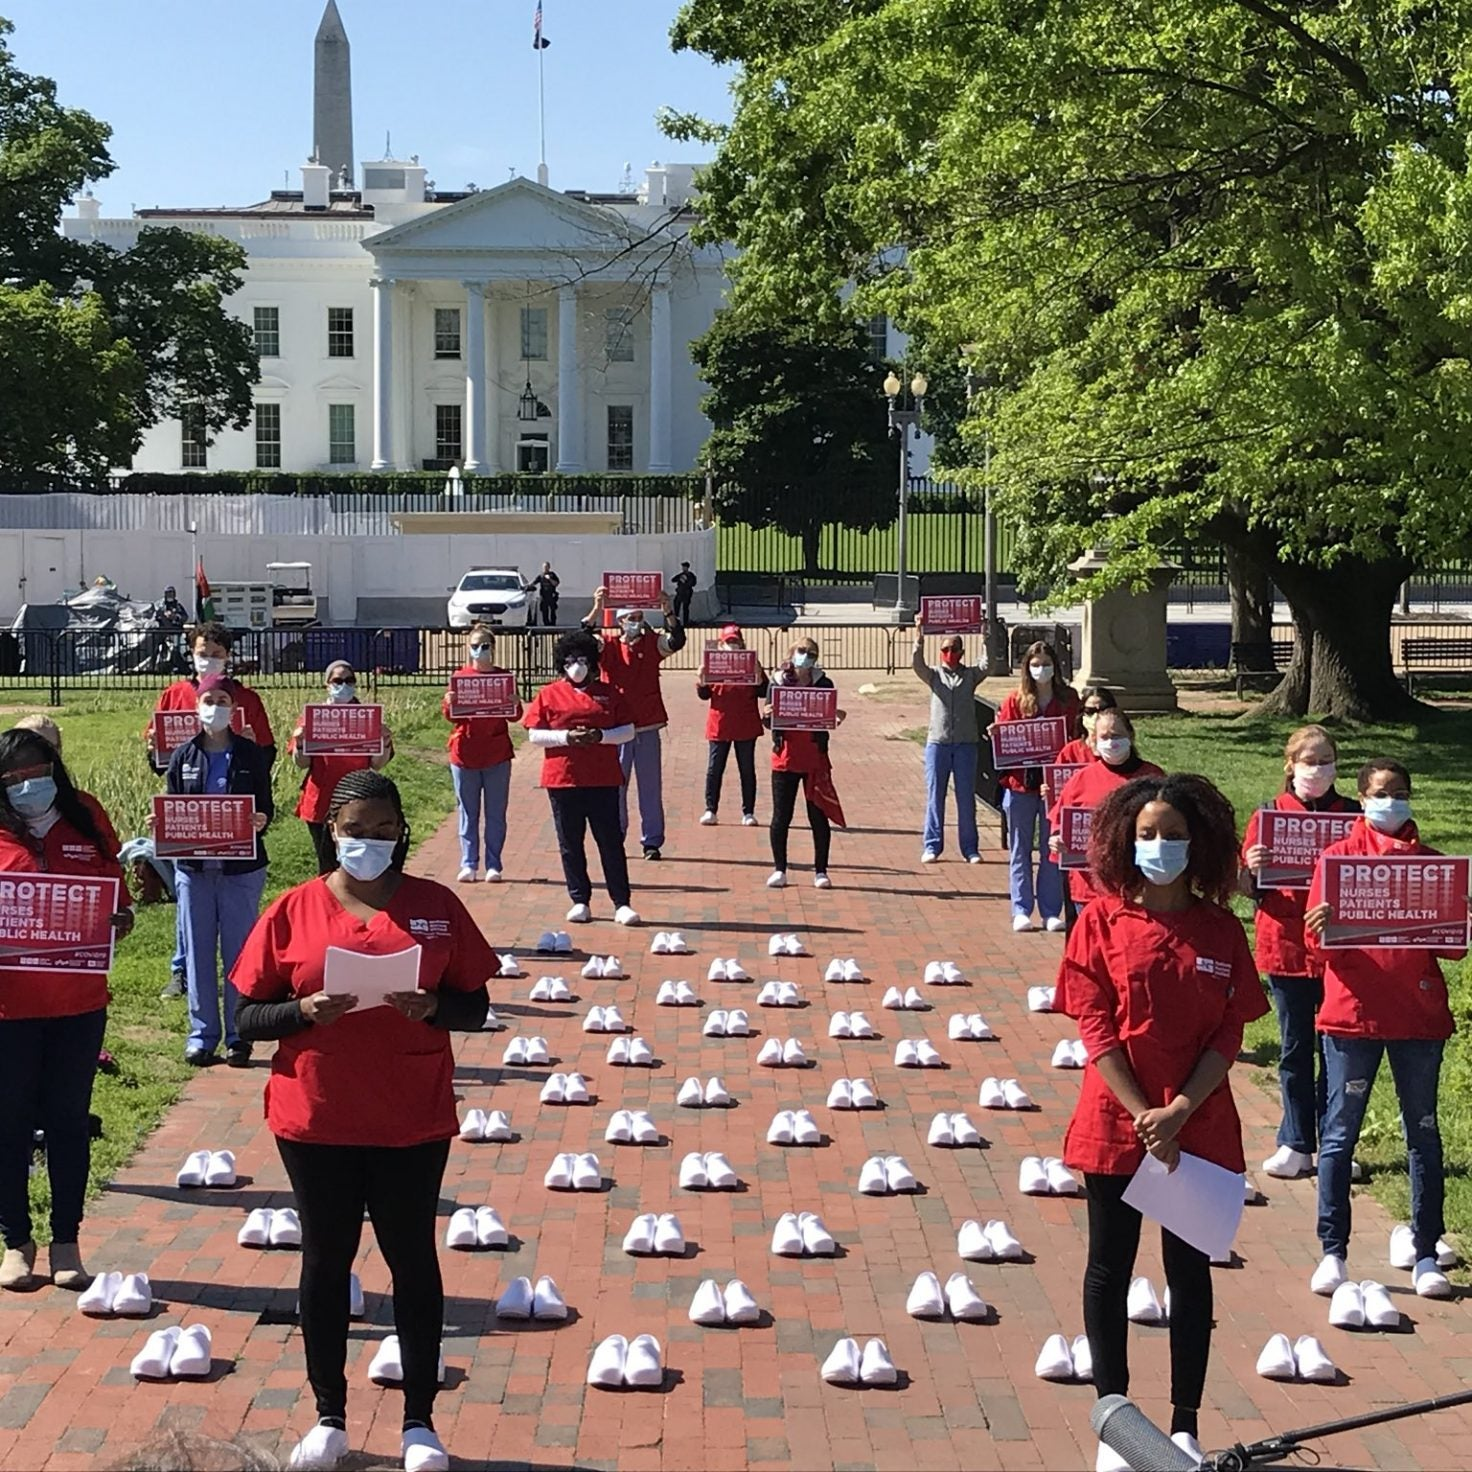 Nurses Rally At White House To Challenge Administration's Response To Coronavirus